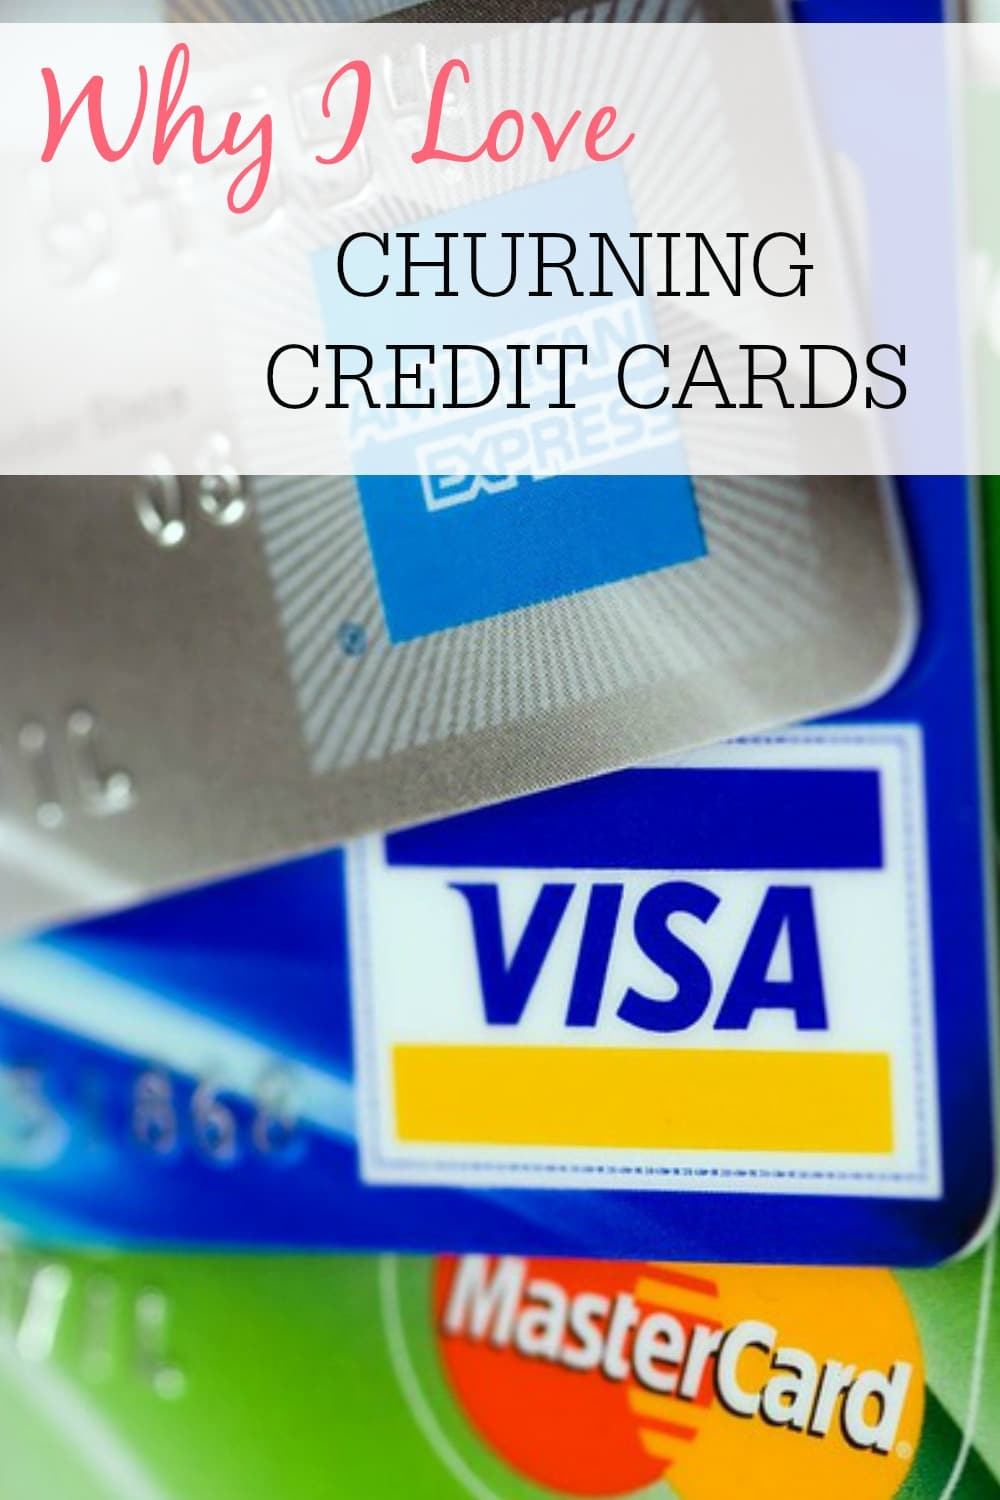 Why I Love Churning Credit Cards